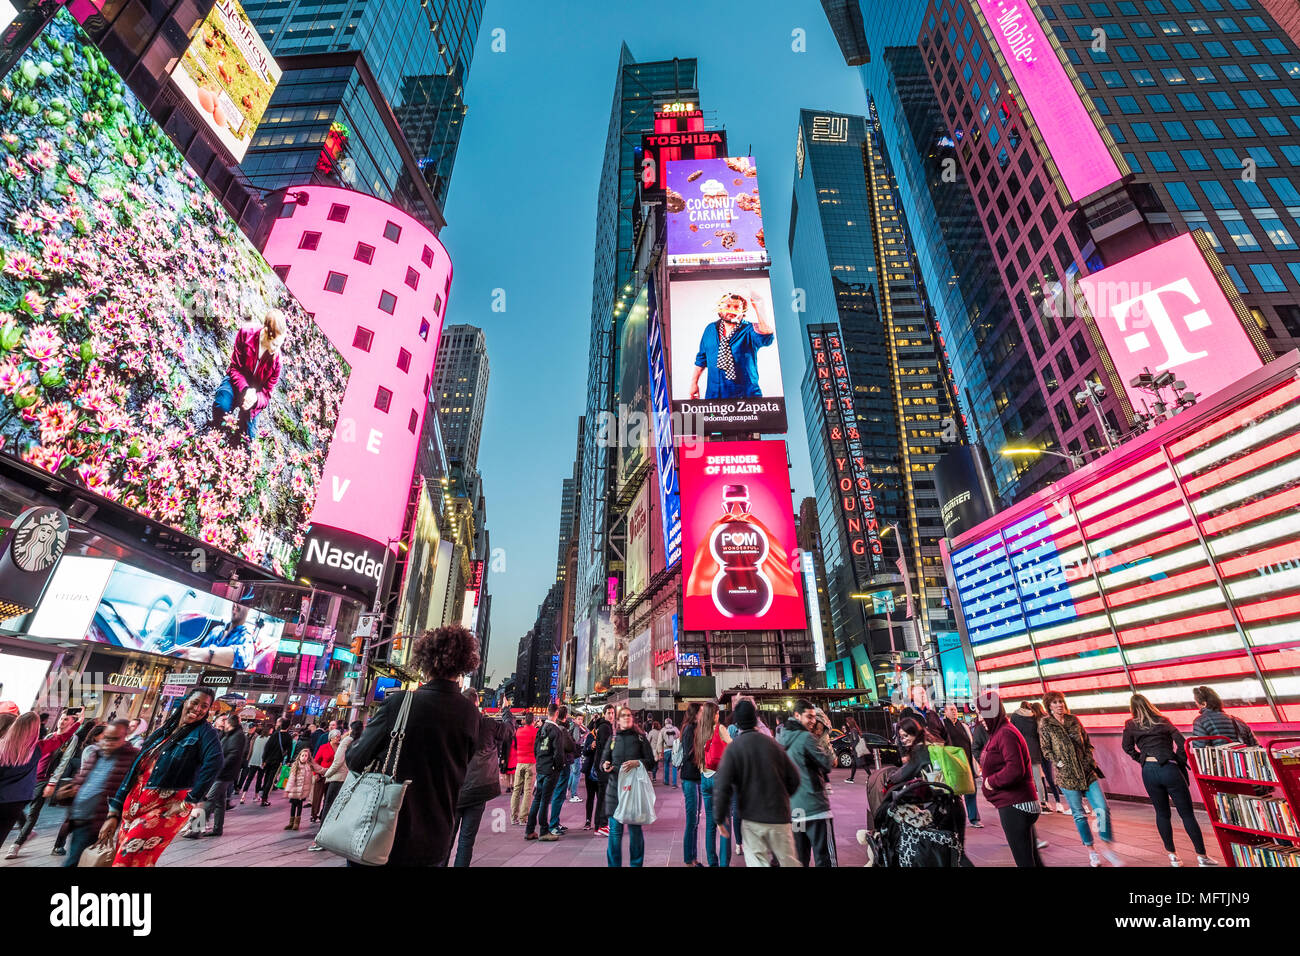 New York city in the USA at Times Square. - Stock Image